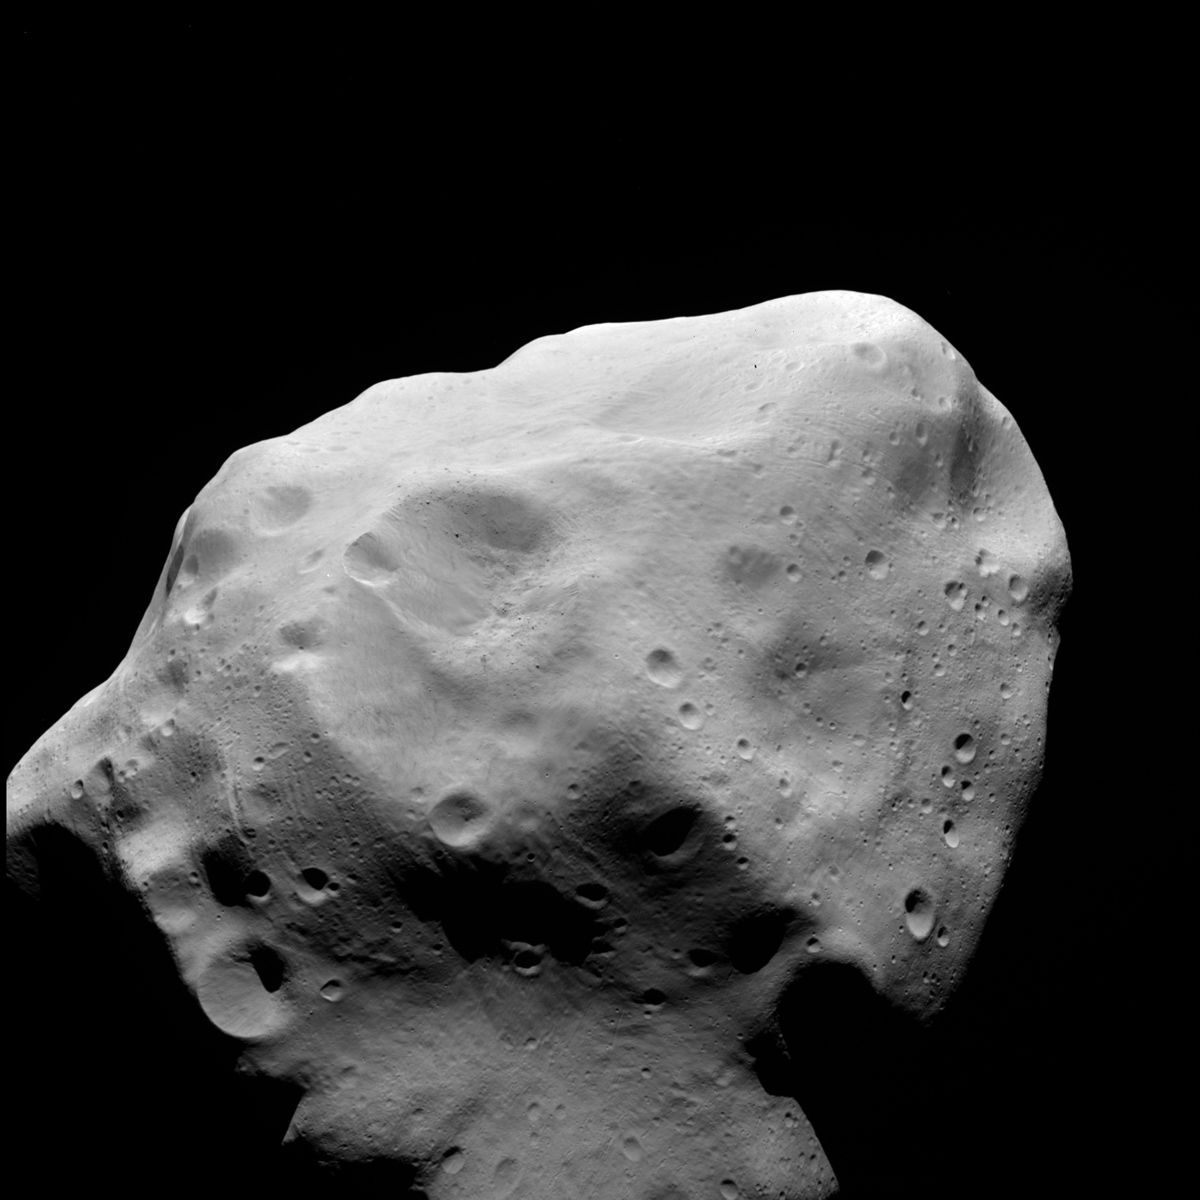 What is the main reason that scientists study asteroids?